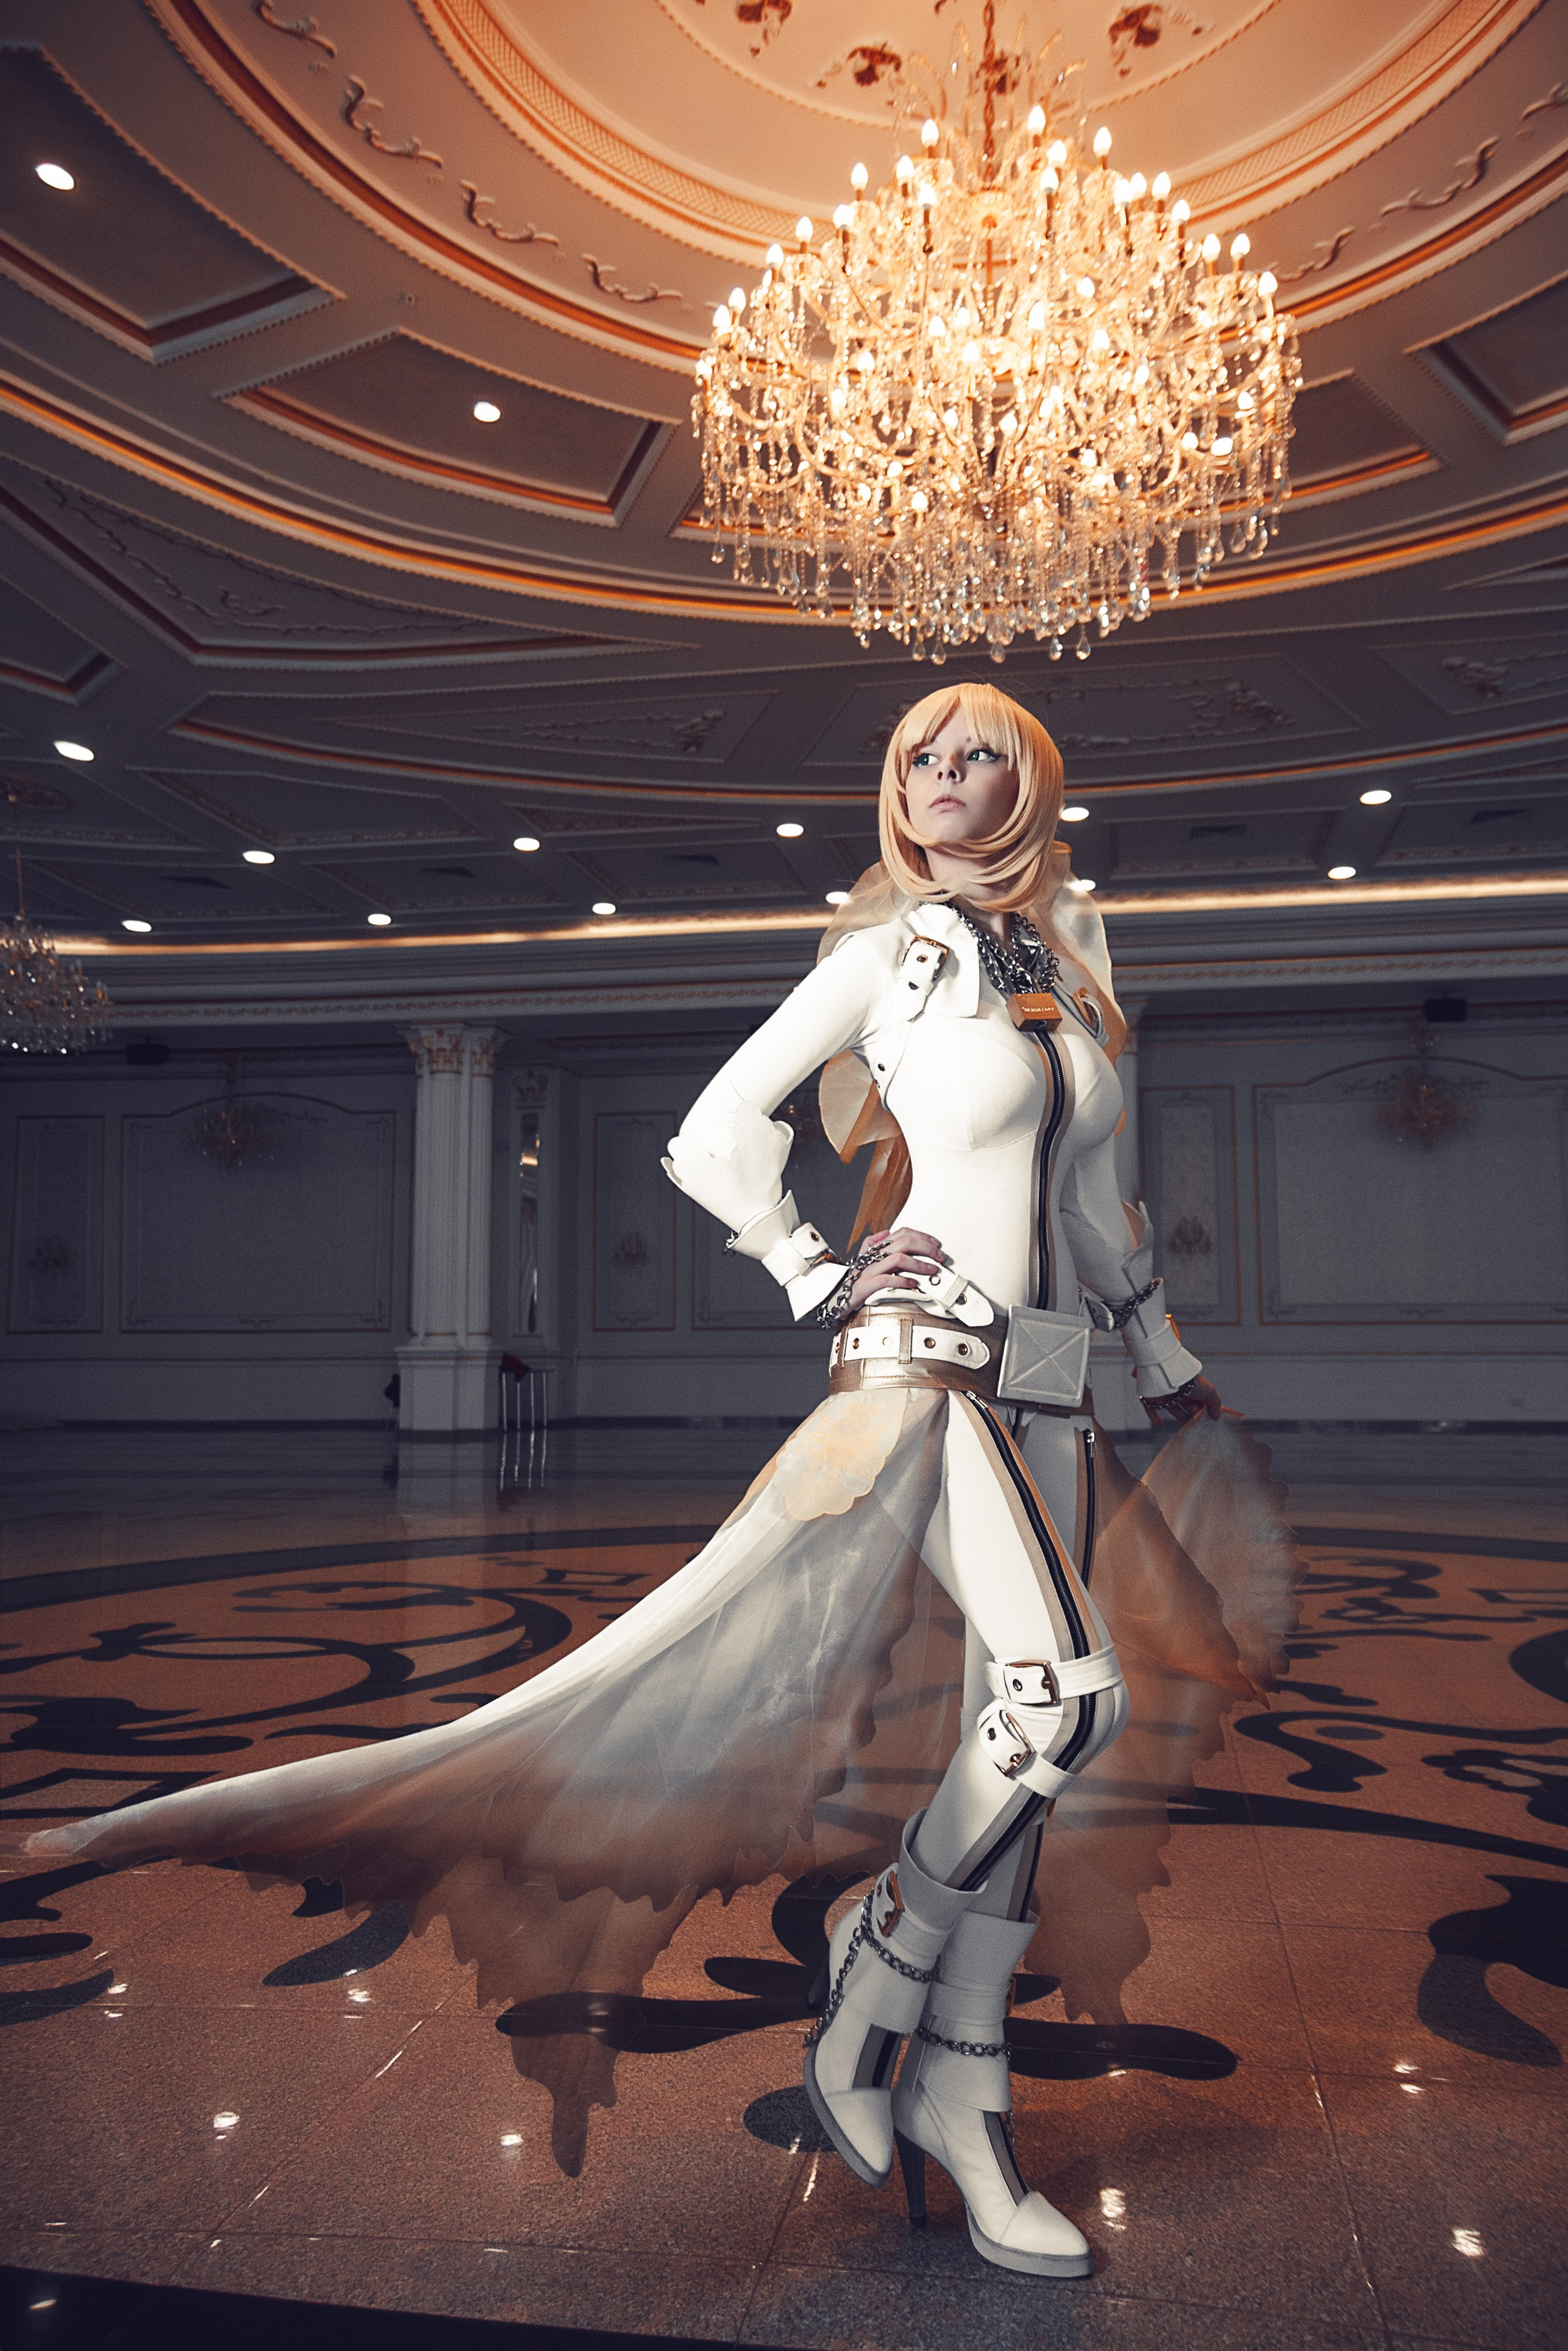 Retro Girl Wallpaper Suits Boots Cosplay Saber Bride Long Hair Blonde